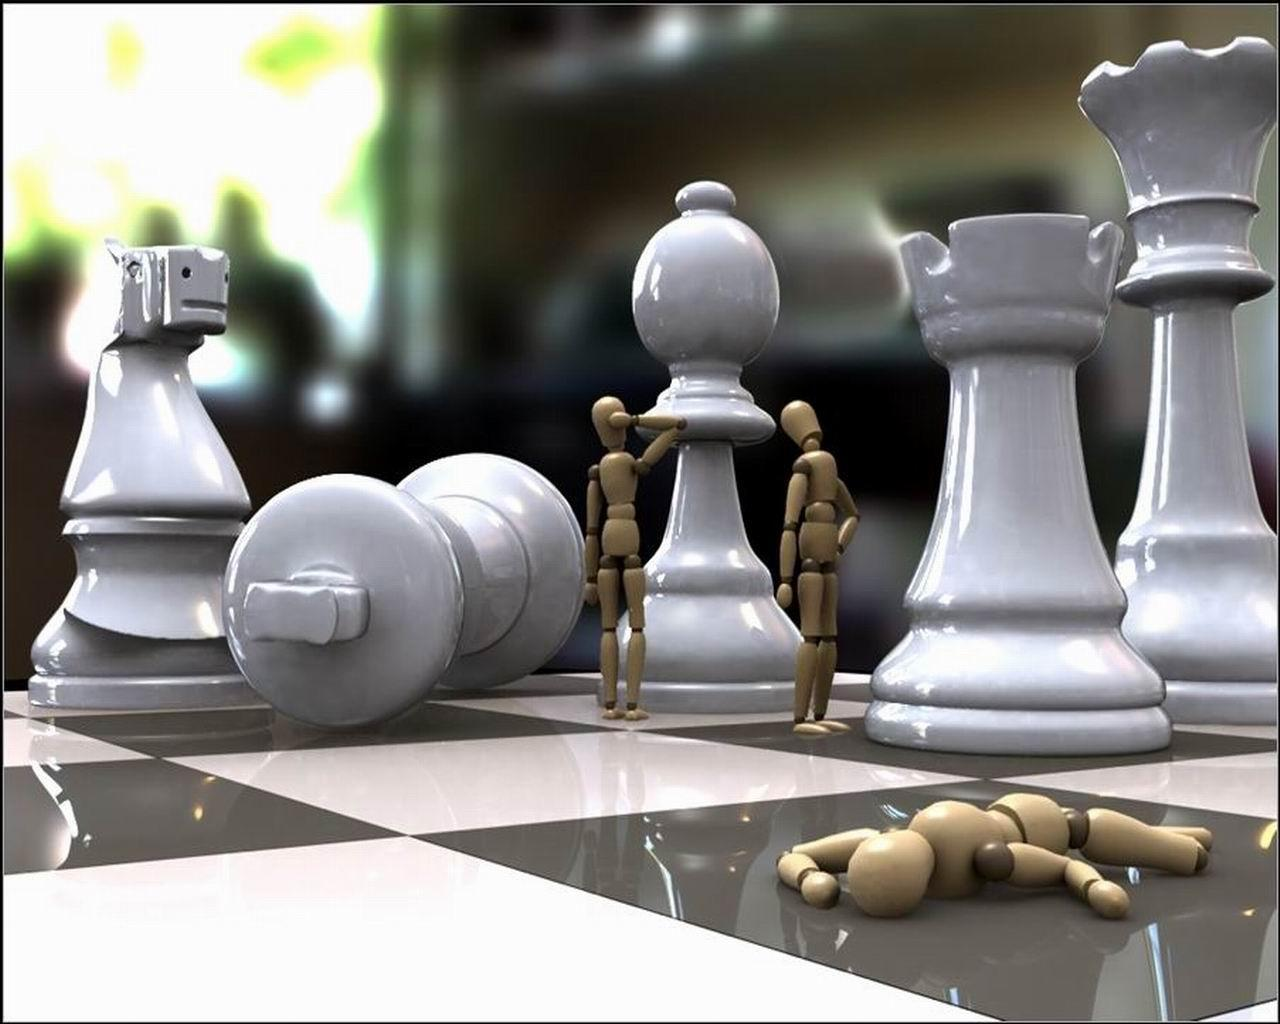 Image For > 3d Chess Board Wallpapers